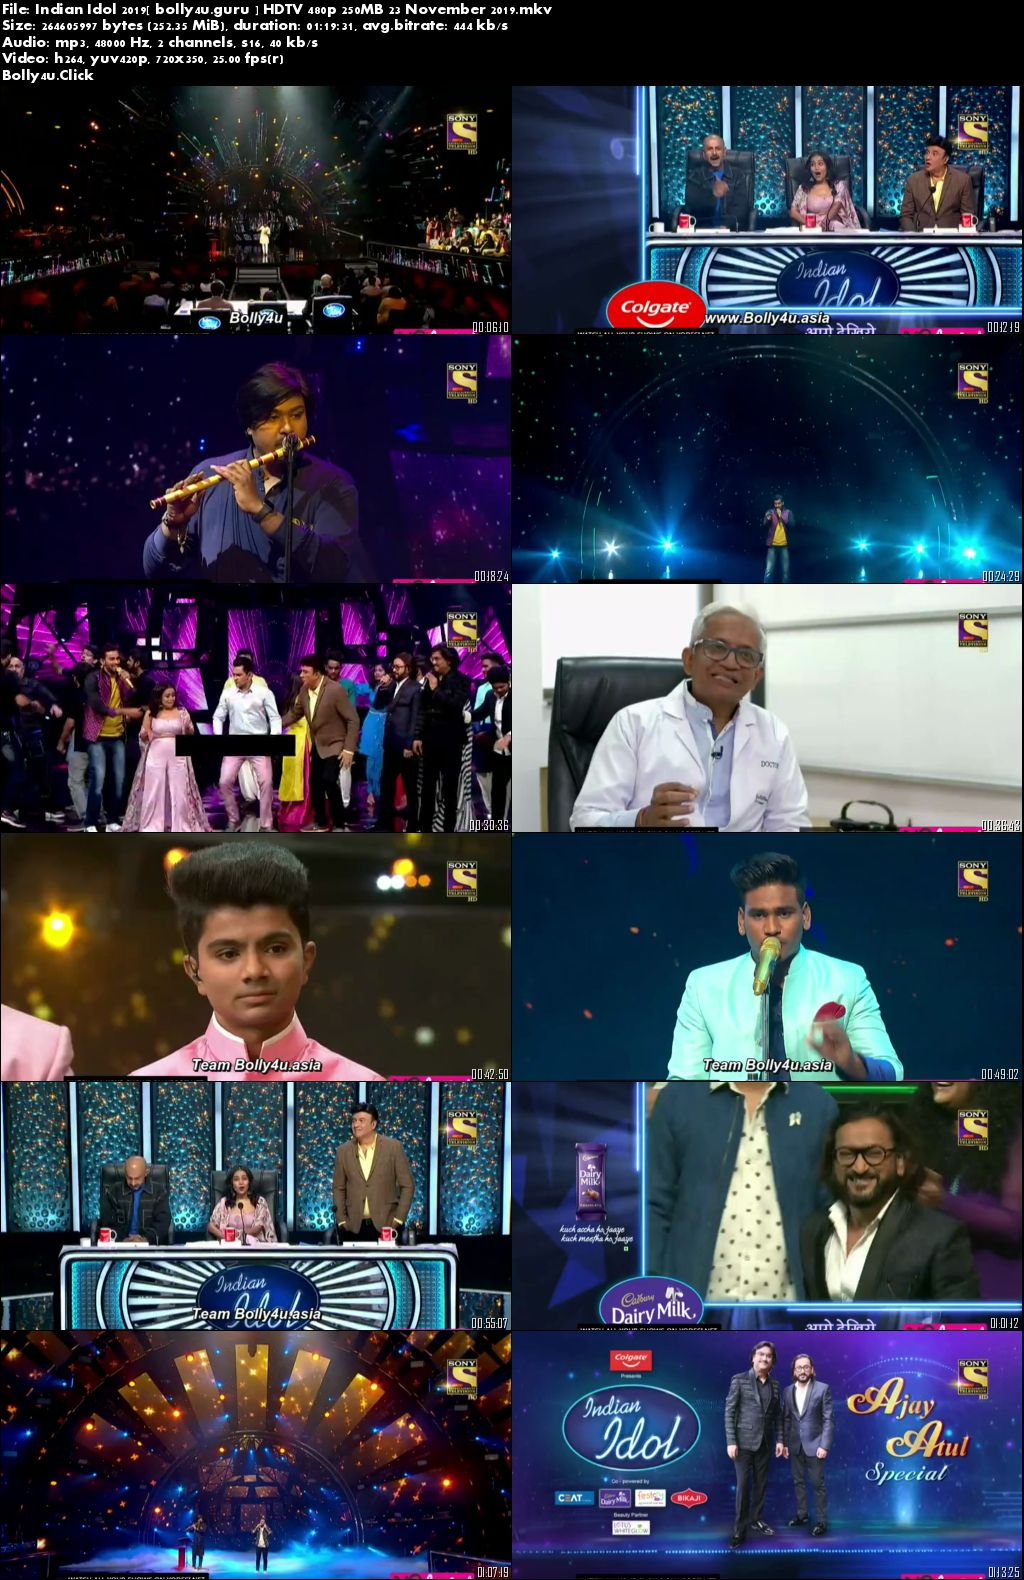 Indian Idol 2019 HDTV 480p 250MB 23 November 2019 Download